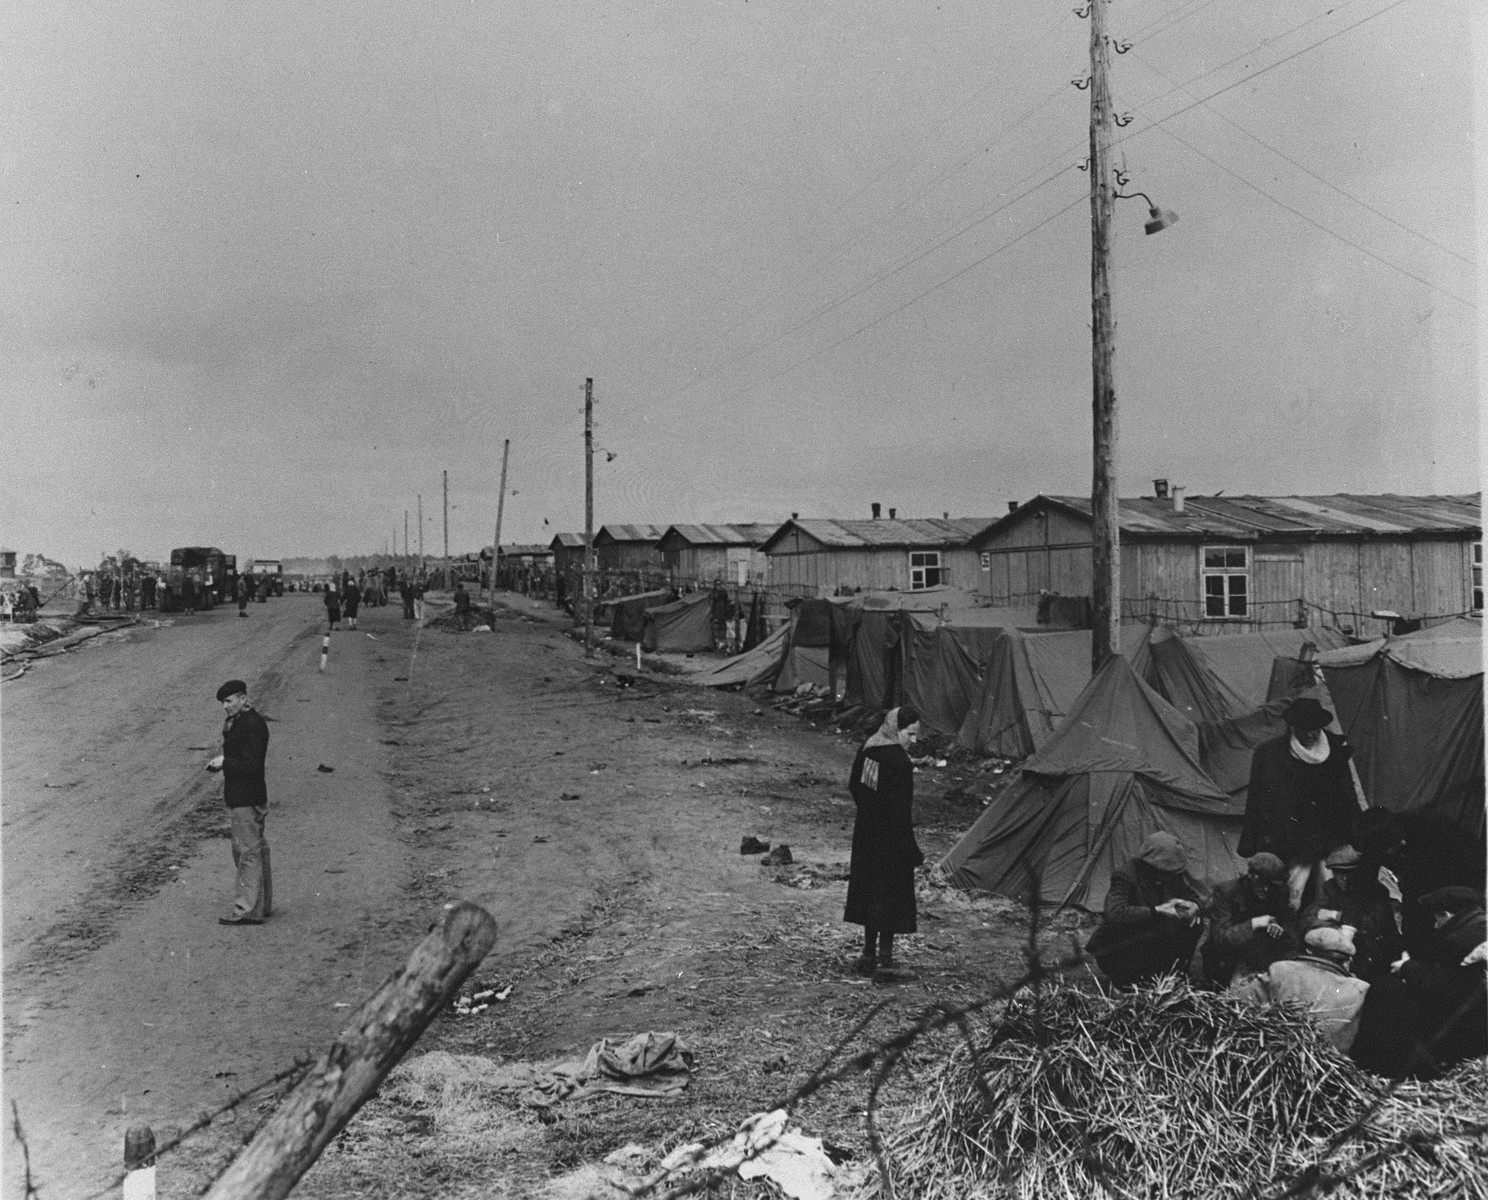 View of the main street in the Bergen-Belsen concentration camp (looking toward the entrance) lined with a row of small tents that have been pitched outside the barracks.    In the foreground, a group of survivors huddles in front of one of the tents, while, in the distance, other liberated prisoners walk along the unpaved road.   Original caption is illegible.